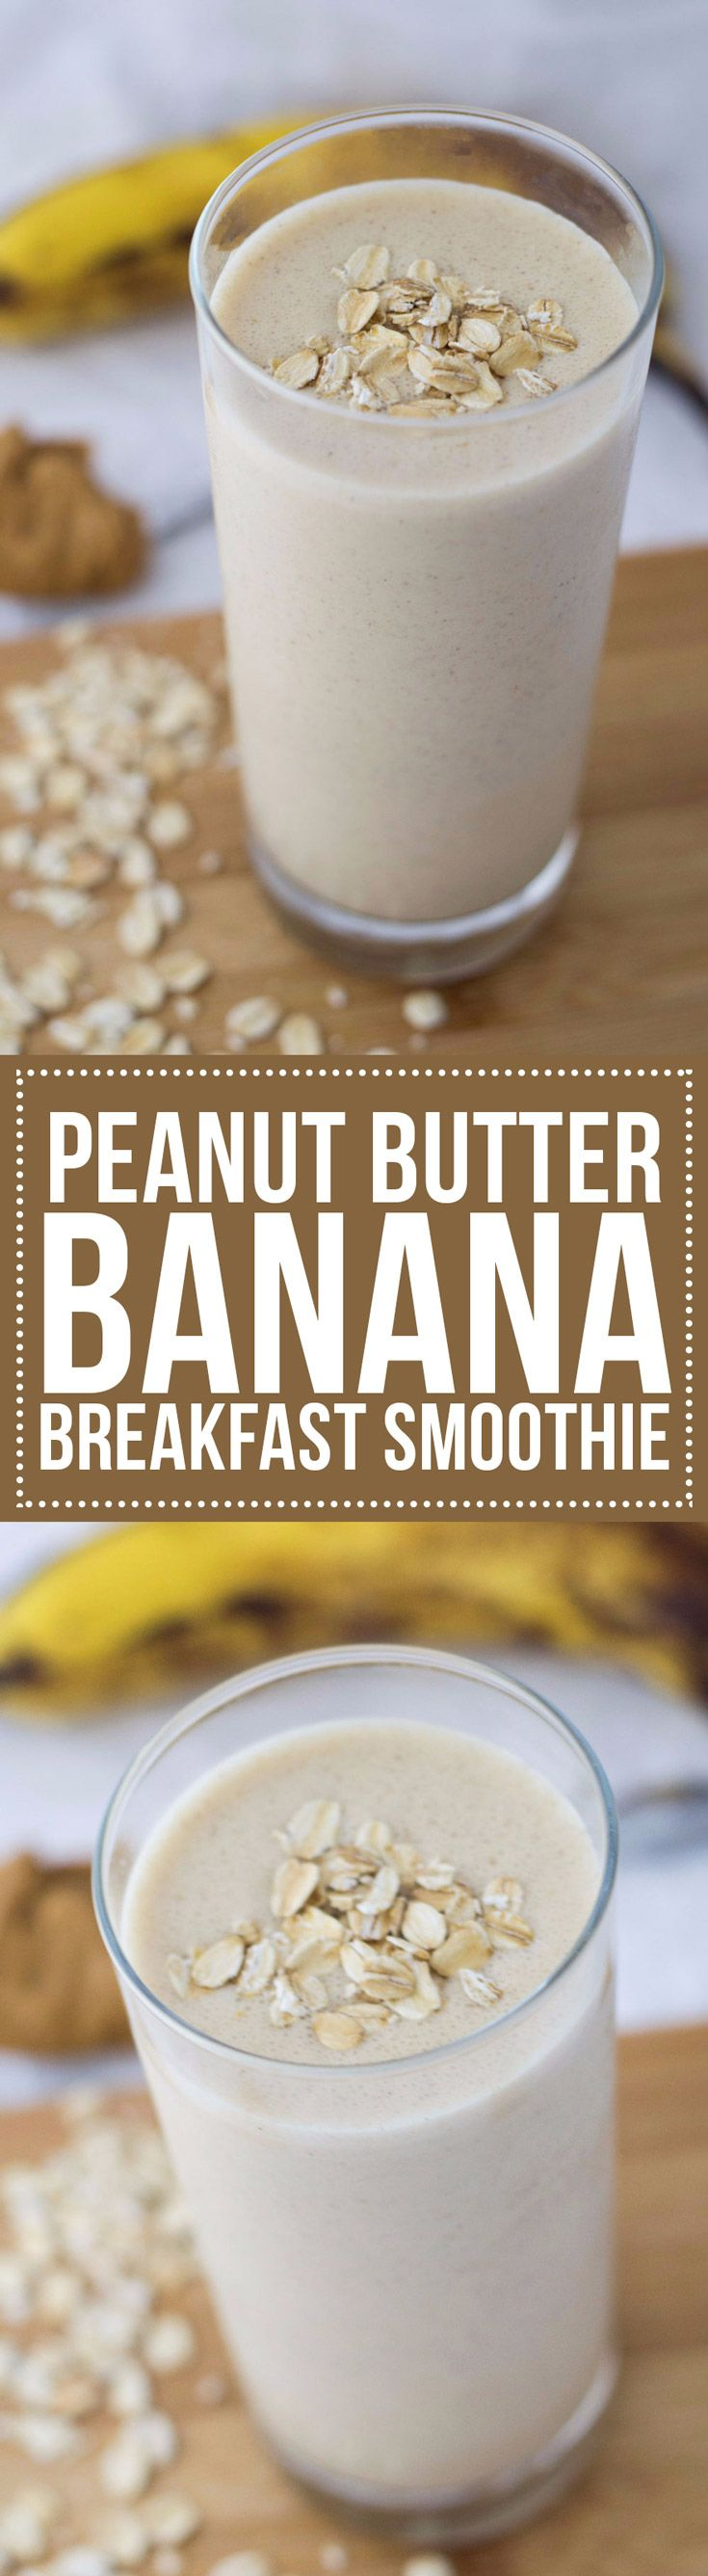 A Peanut Butter Banana Breakfast Smoothie is the perfect way to start the day! With 16 grams of protein, it'll fill you up too. #proteinshakes